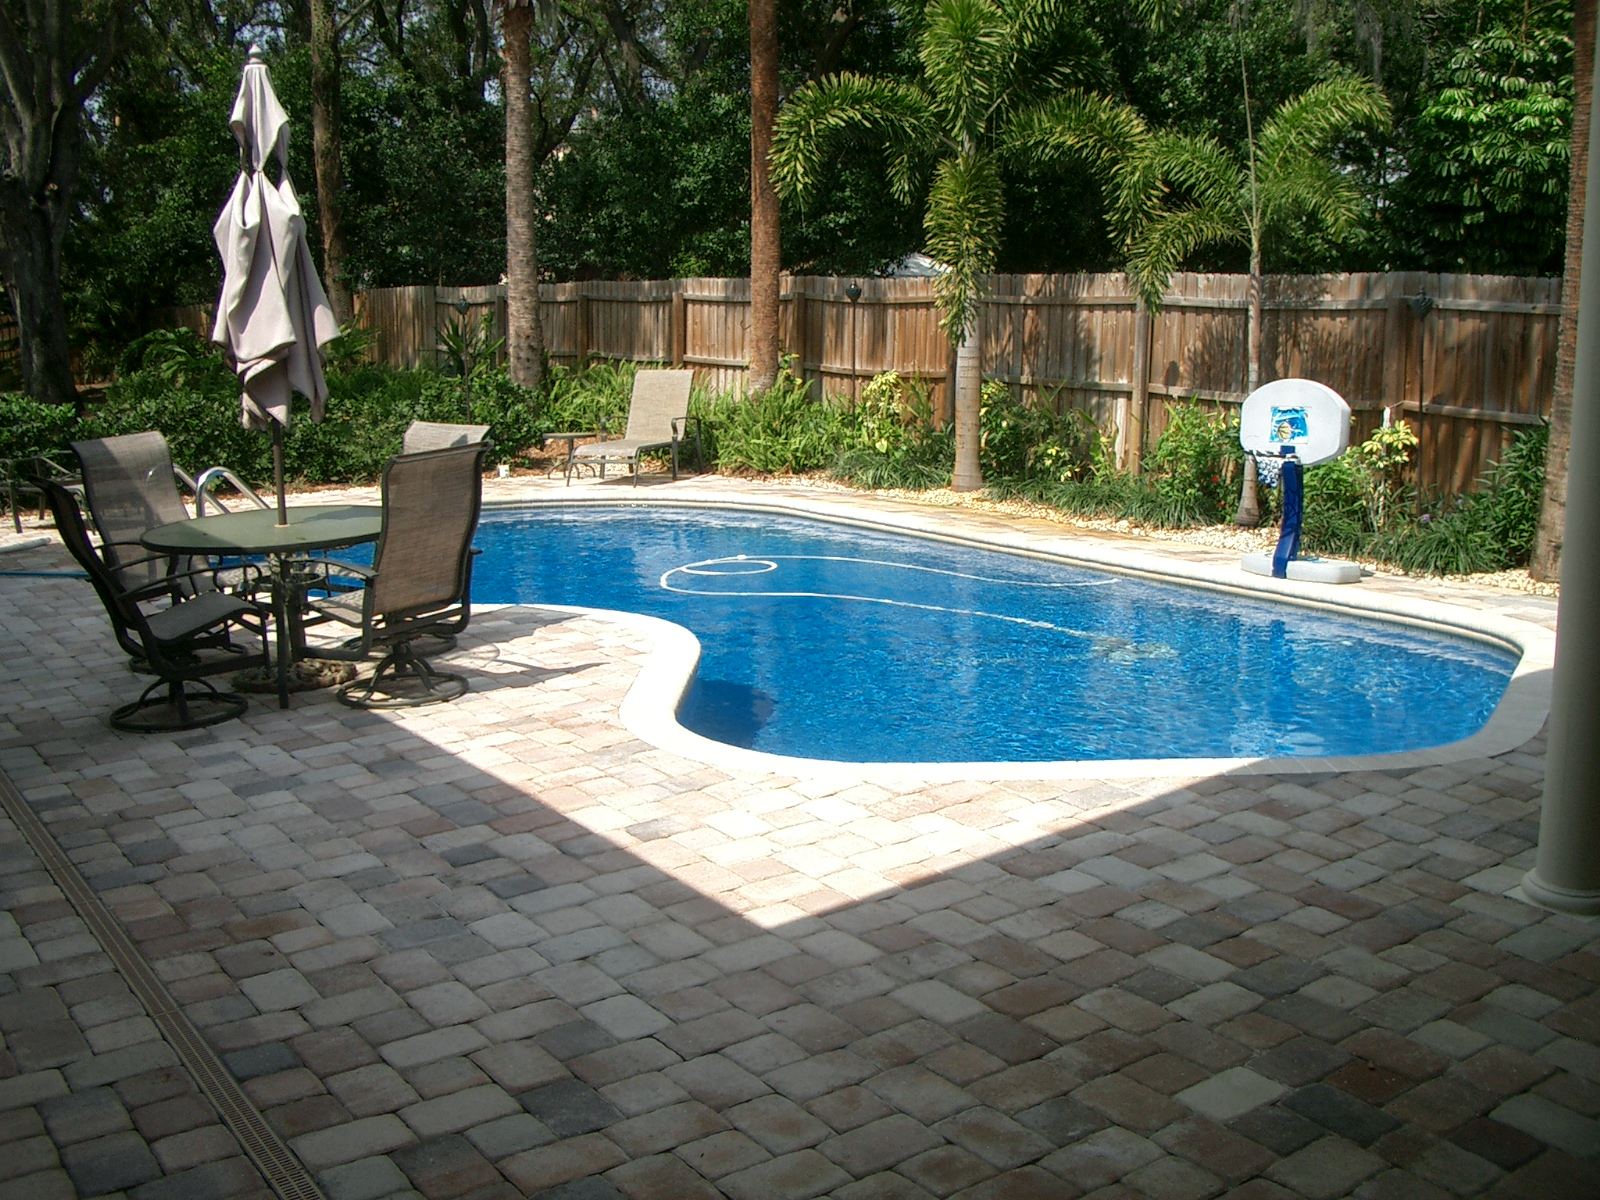 Backyard Pool Design Ideas | Design of Architecture and Furniture ...